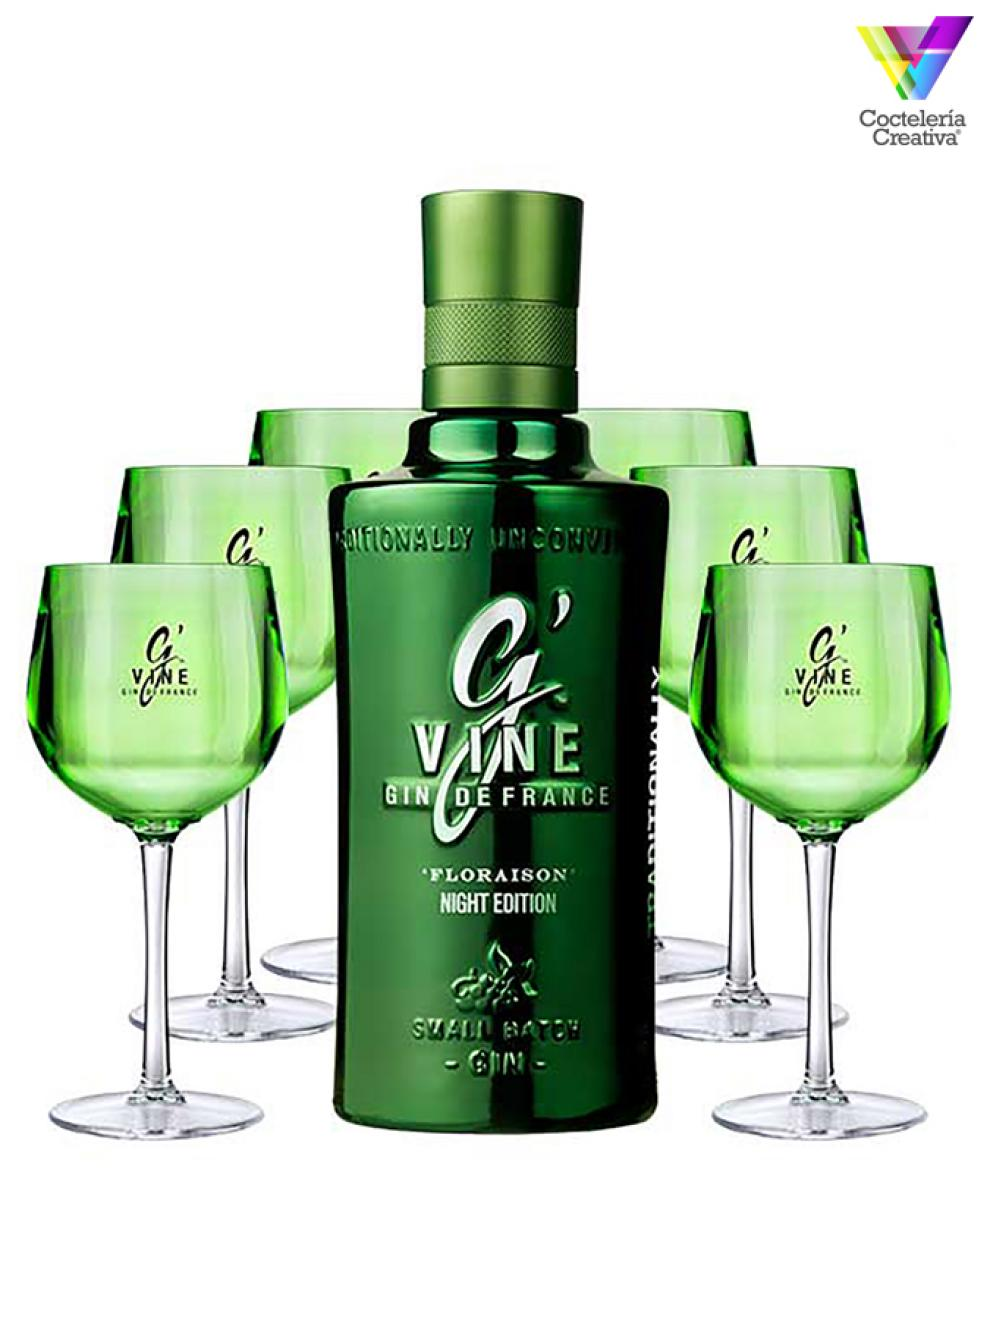 imagen de la botella de gvine night edition con copas de regalo